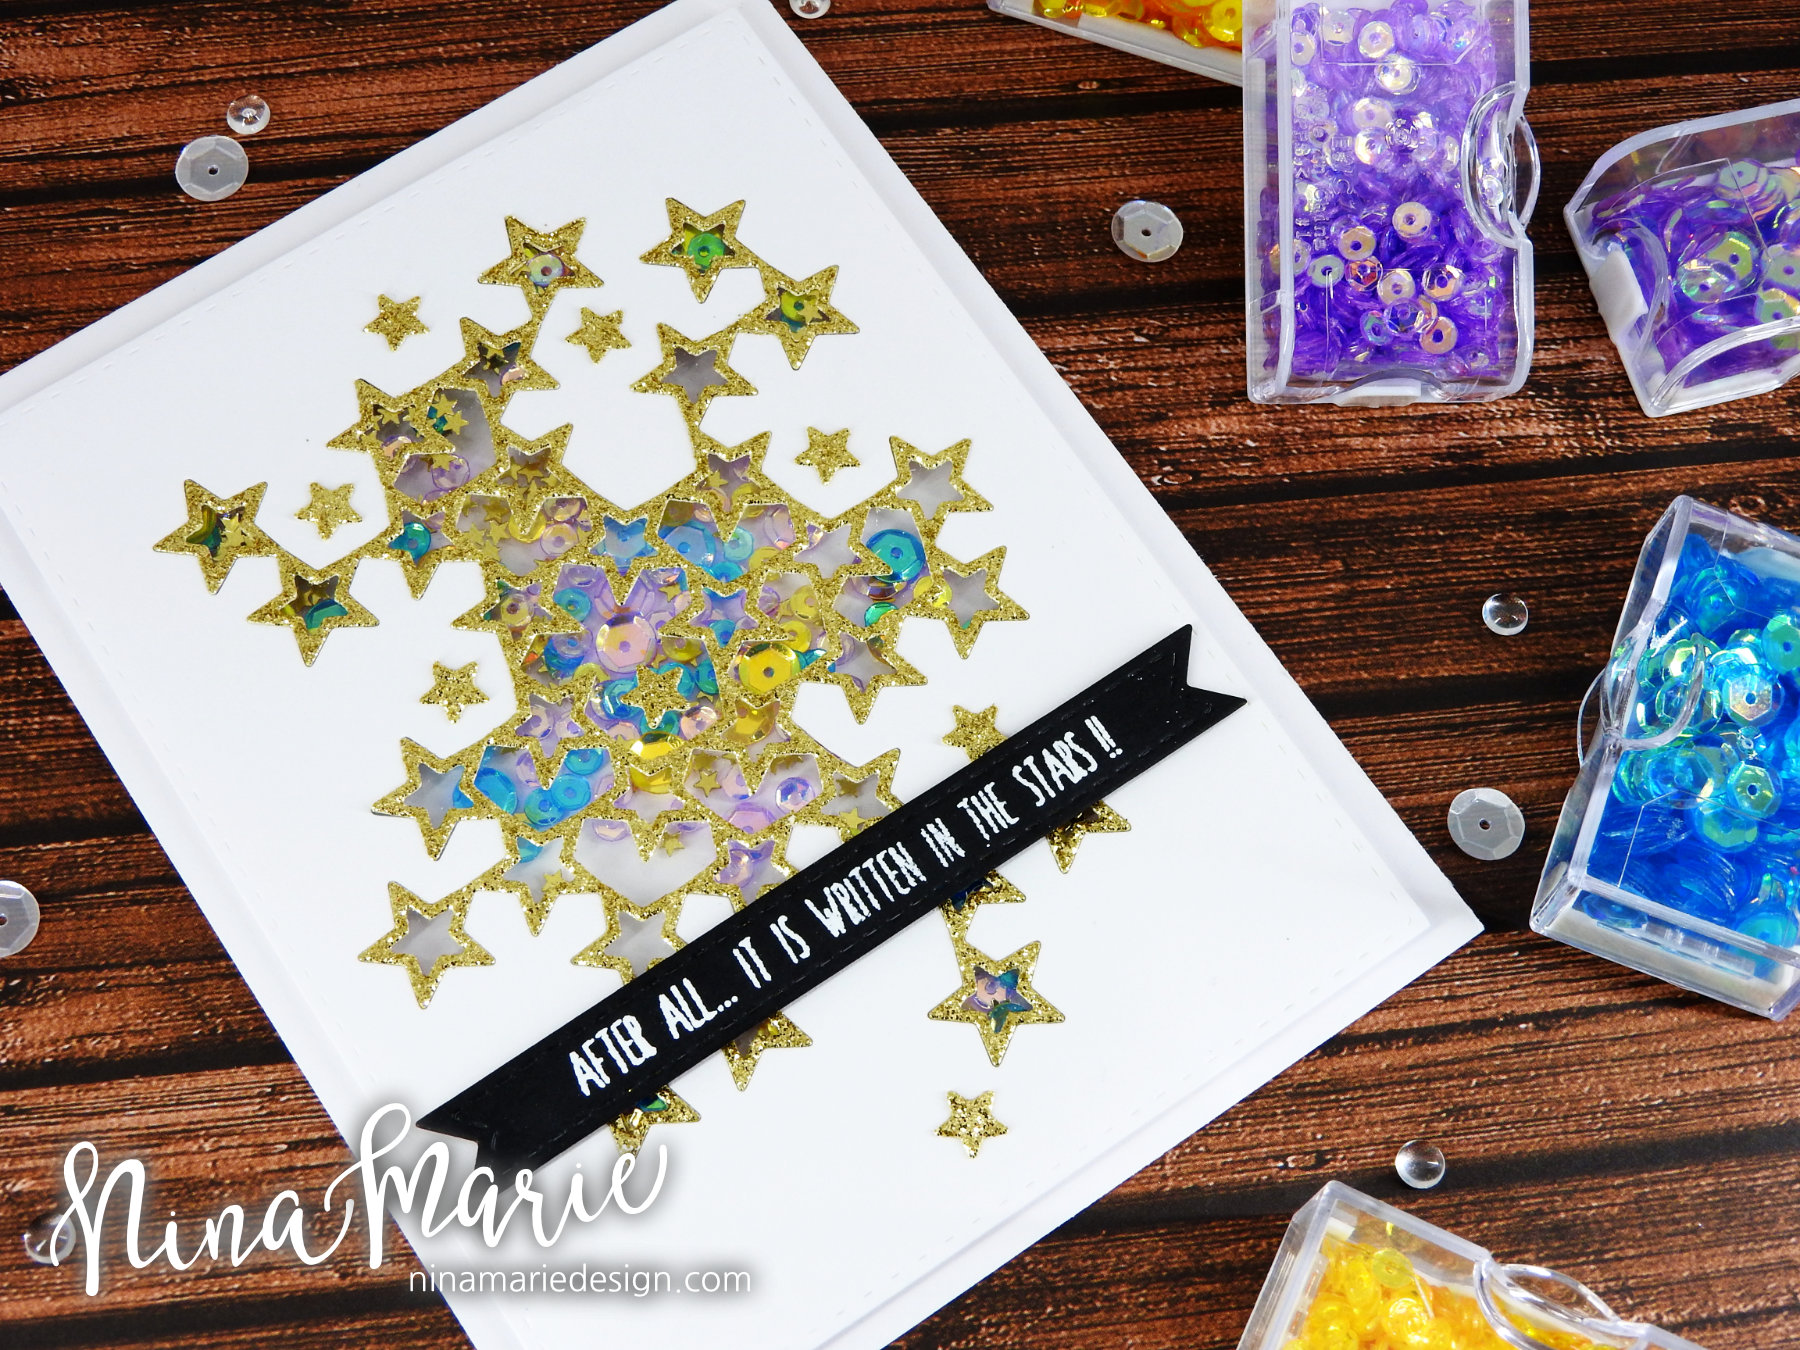 Glitter Die Cut Shaker + Simon's Among the Stars Release_3